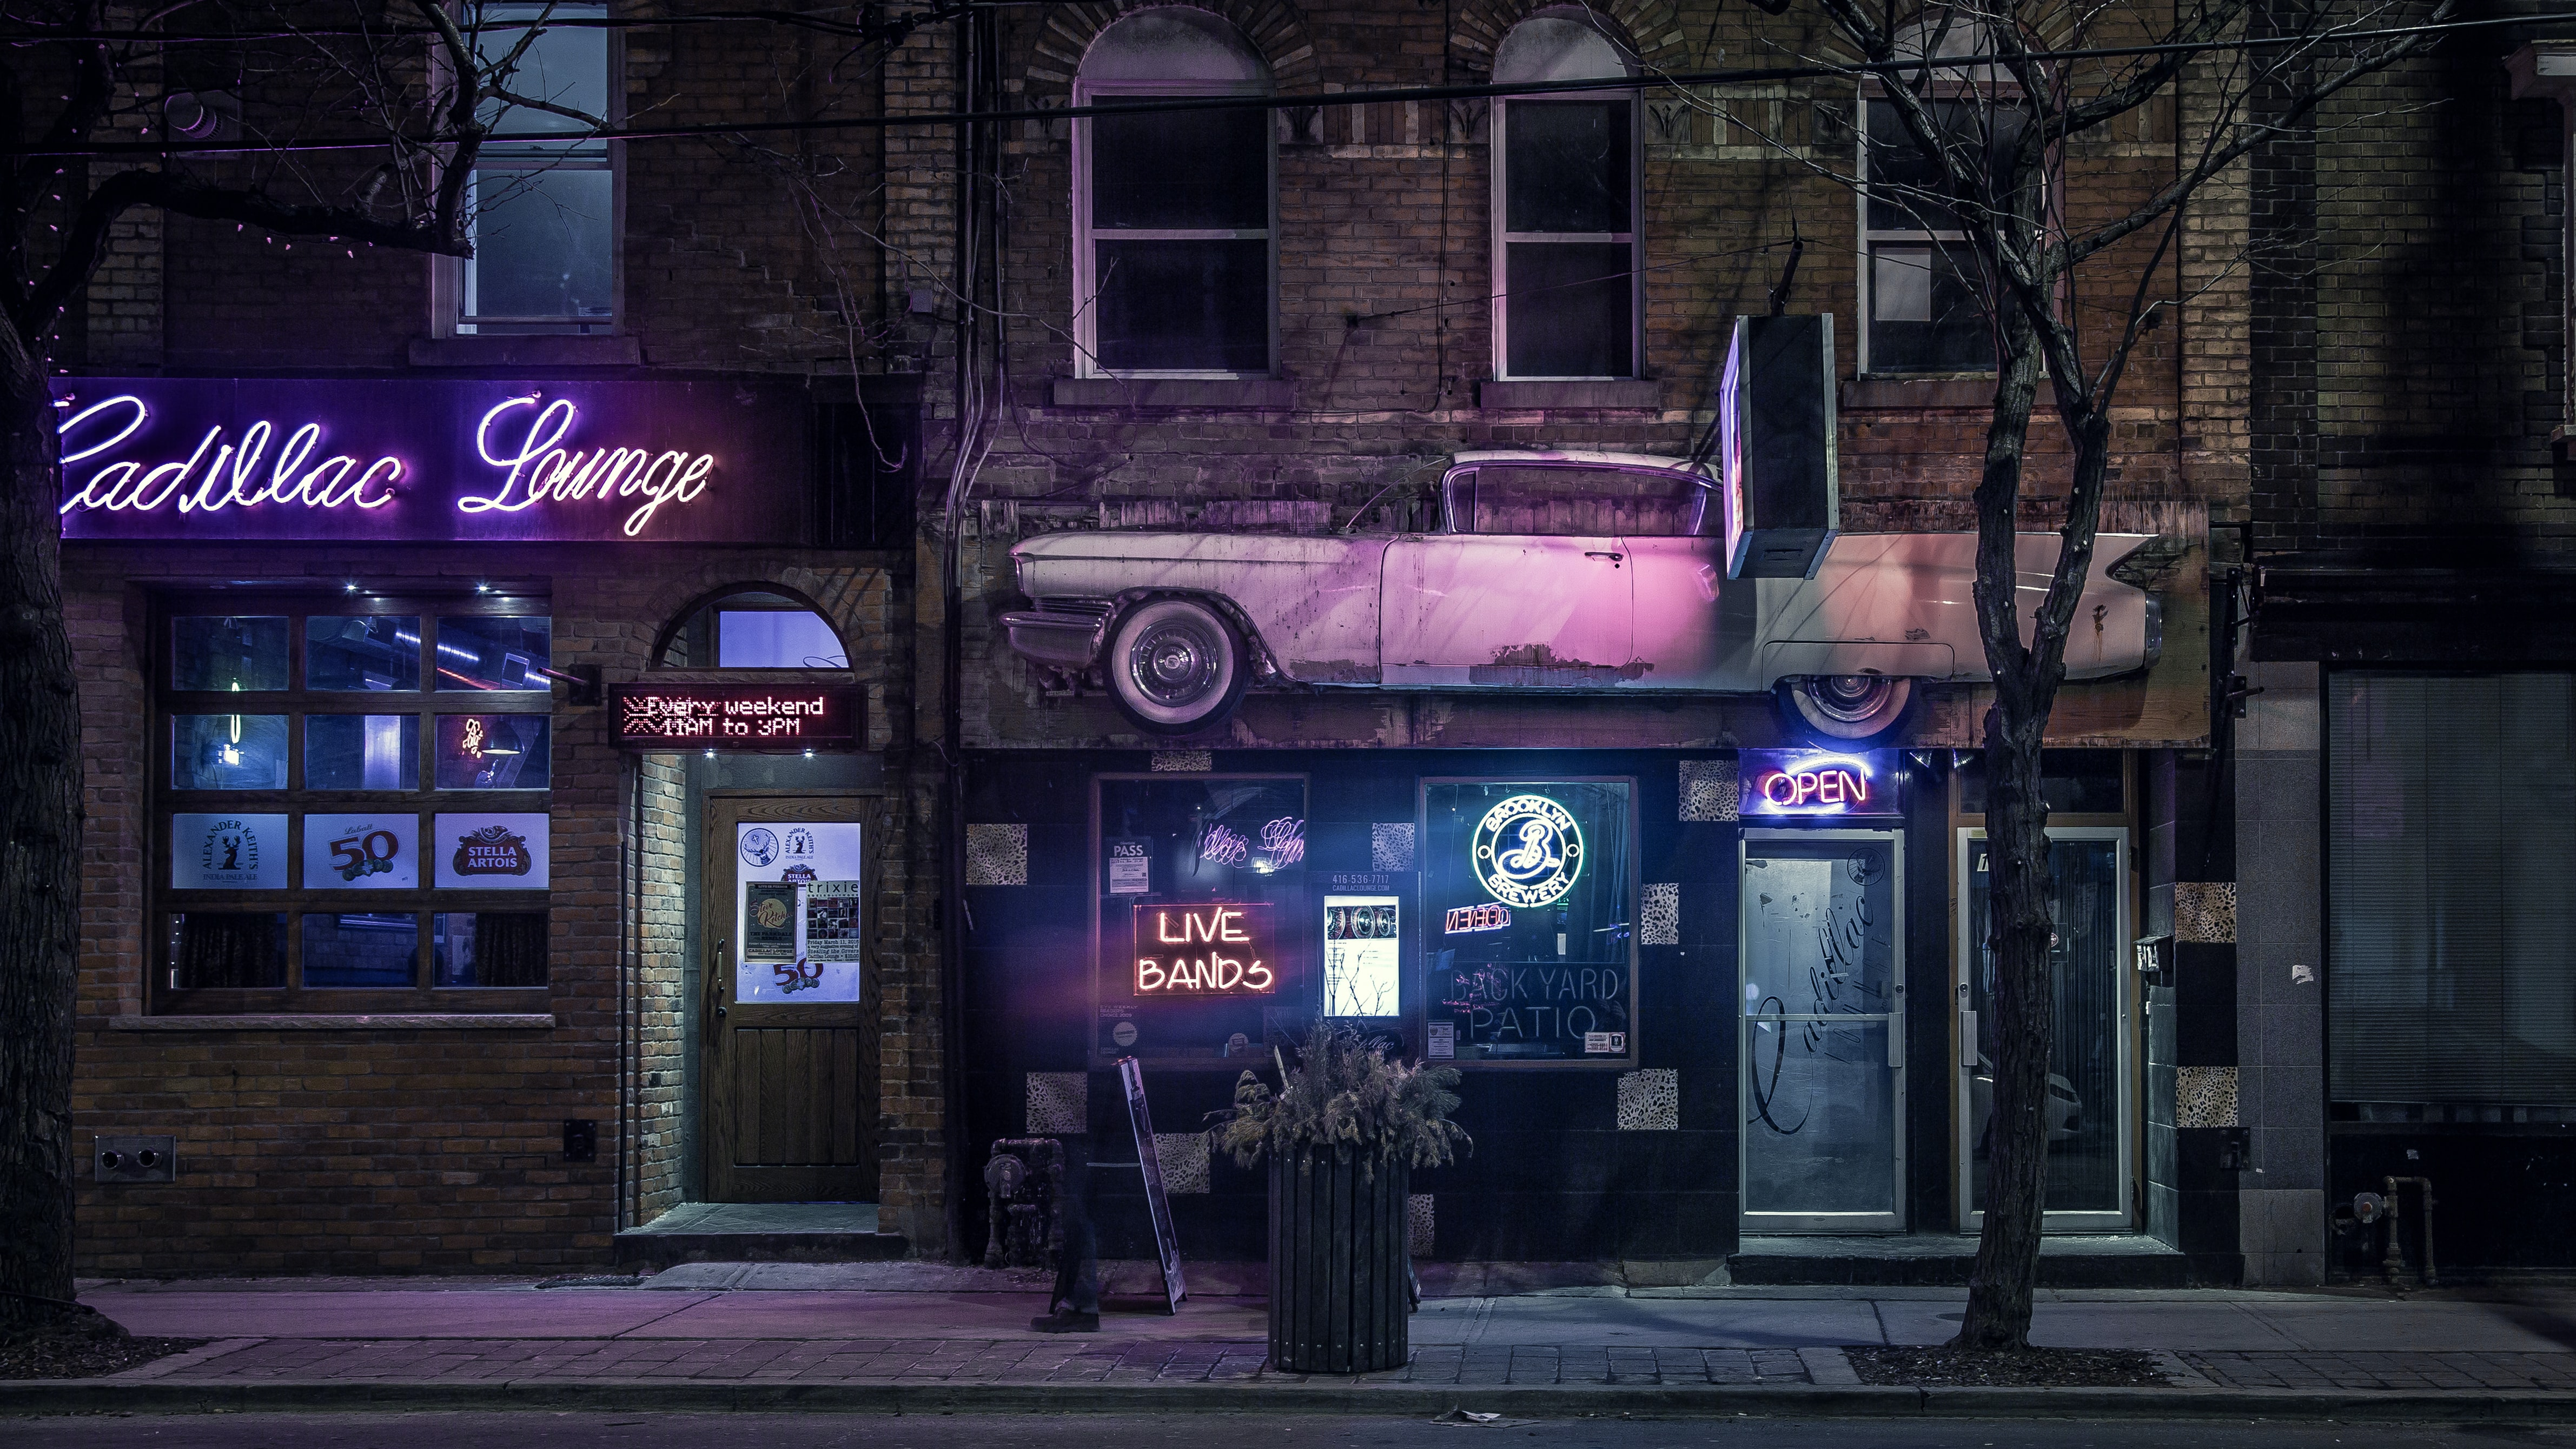 The entrance to Cadillac Lounge illuminated with neons in the evening